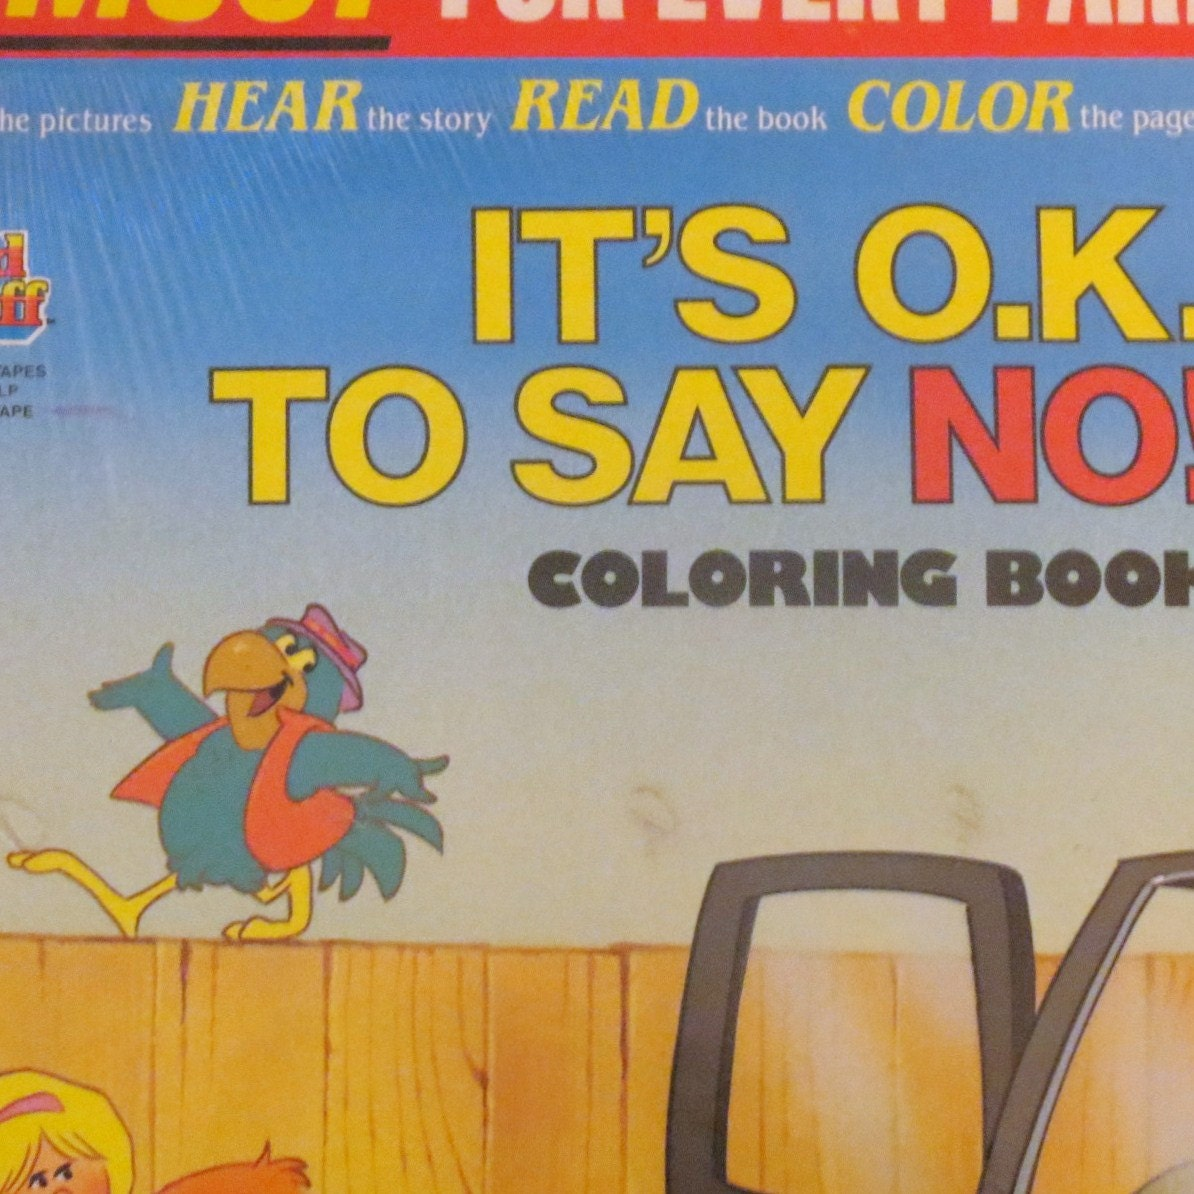 Its ok to say no full length recording and coloring book new Coloring book record